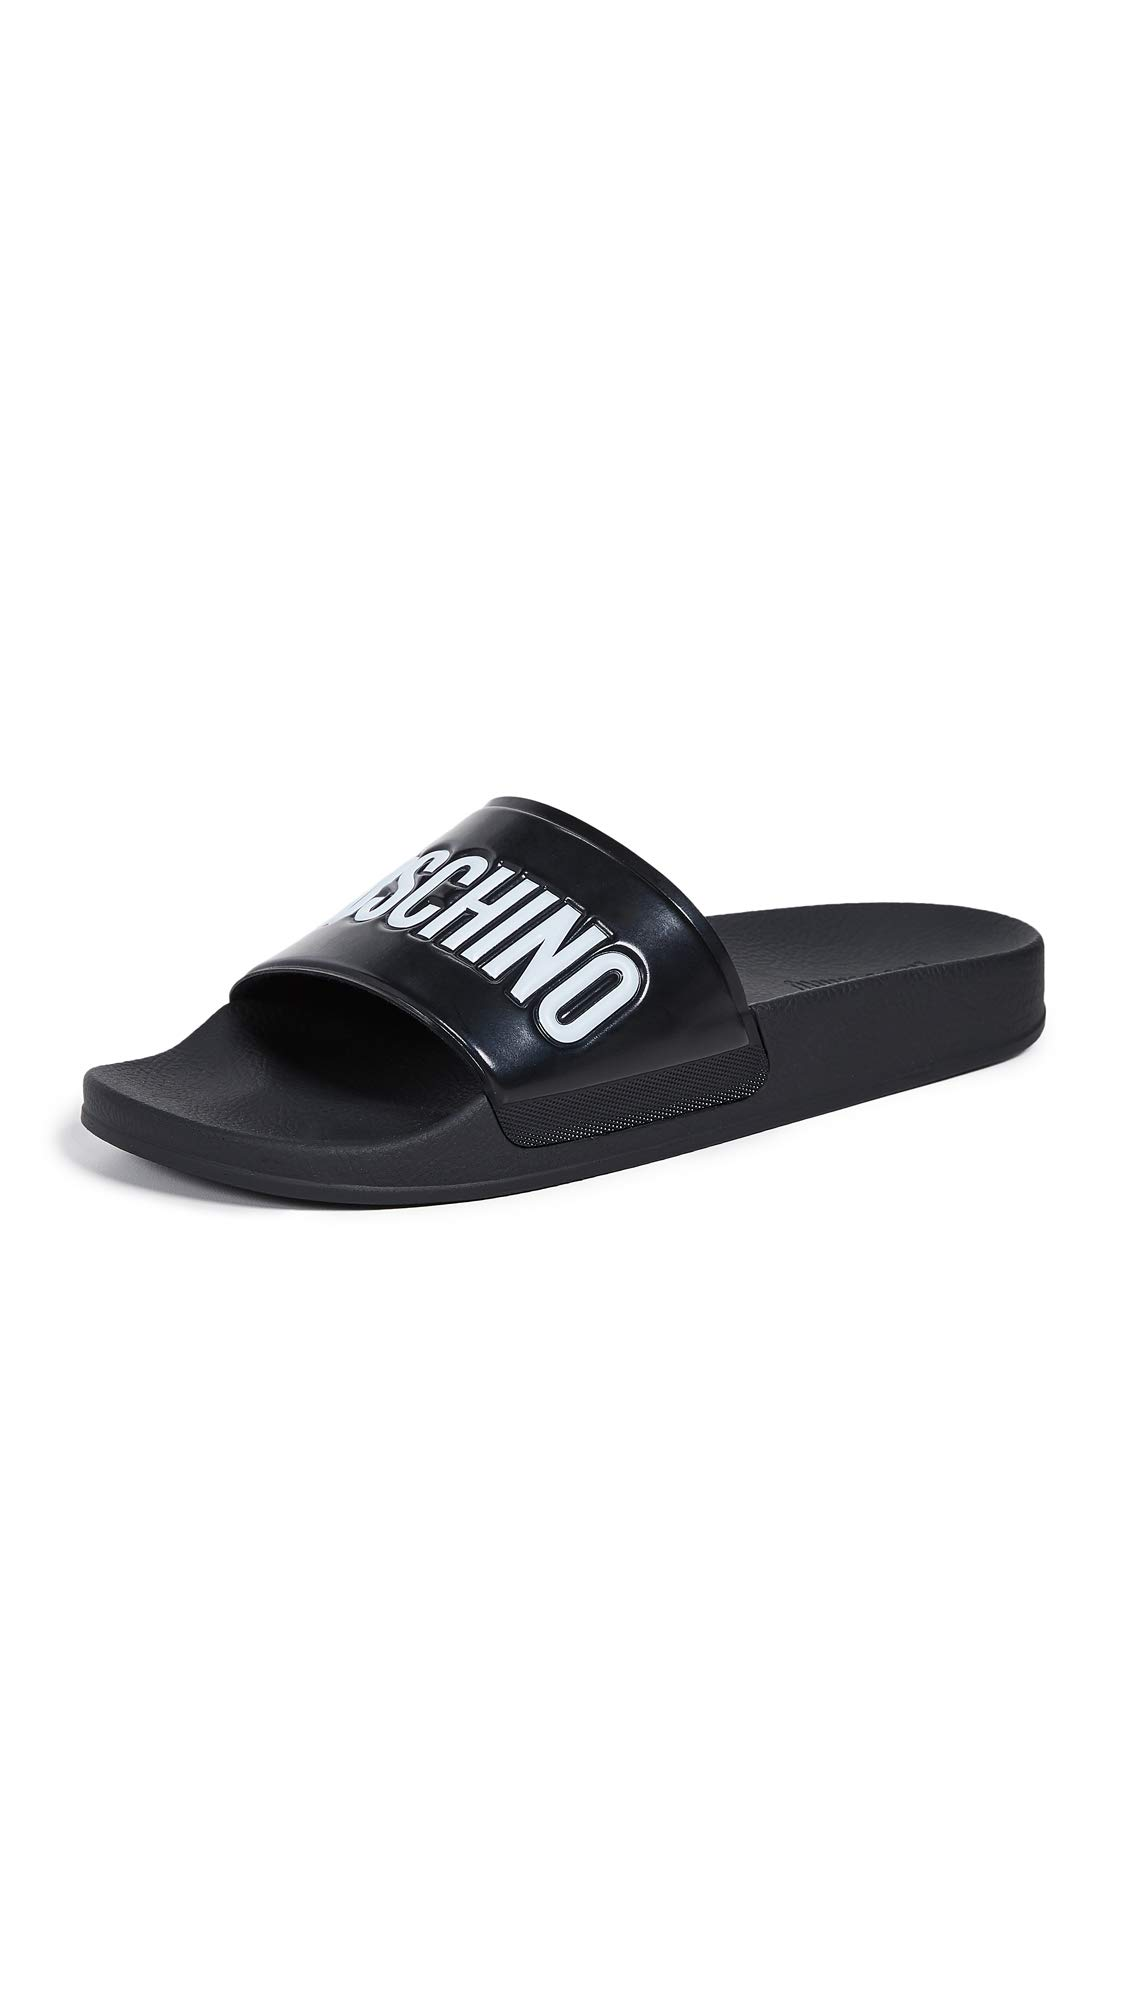 MOSCHINO Men's Pool Slides, Black, 41 M EU